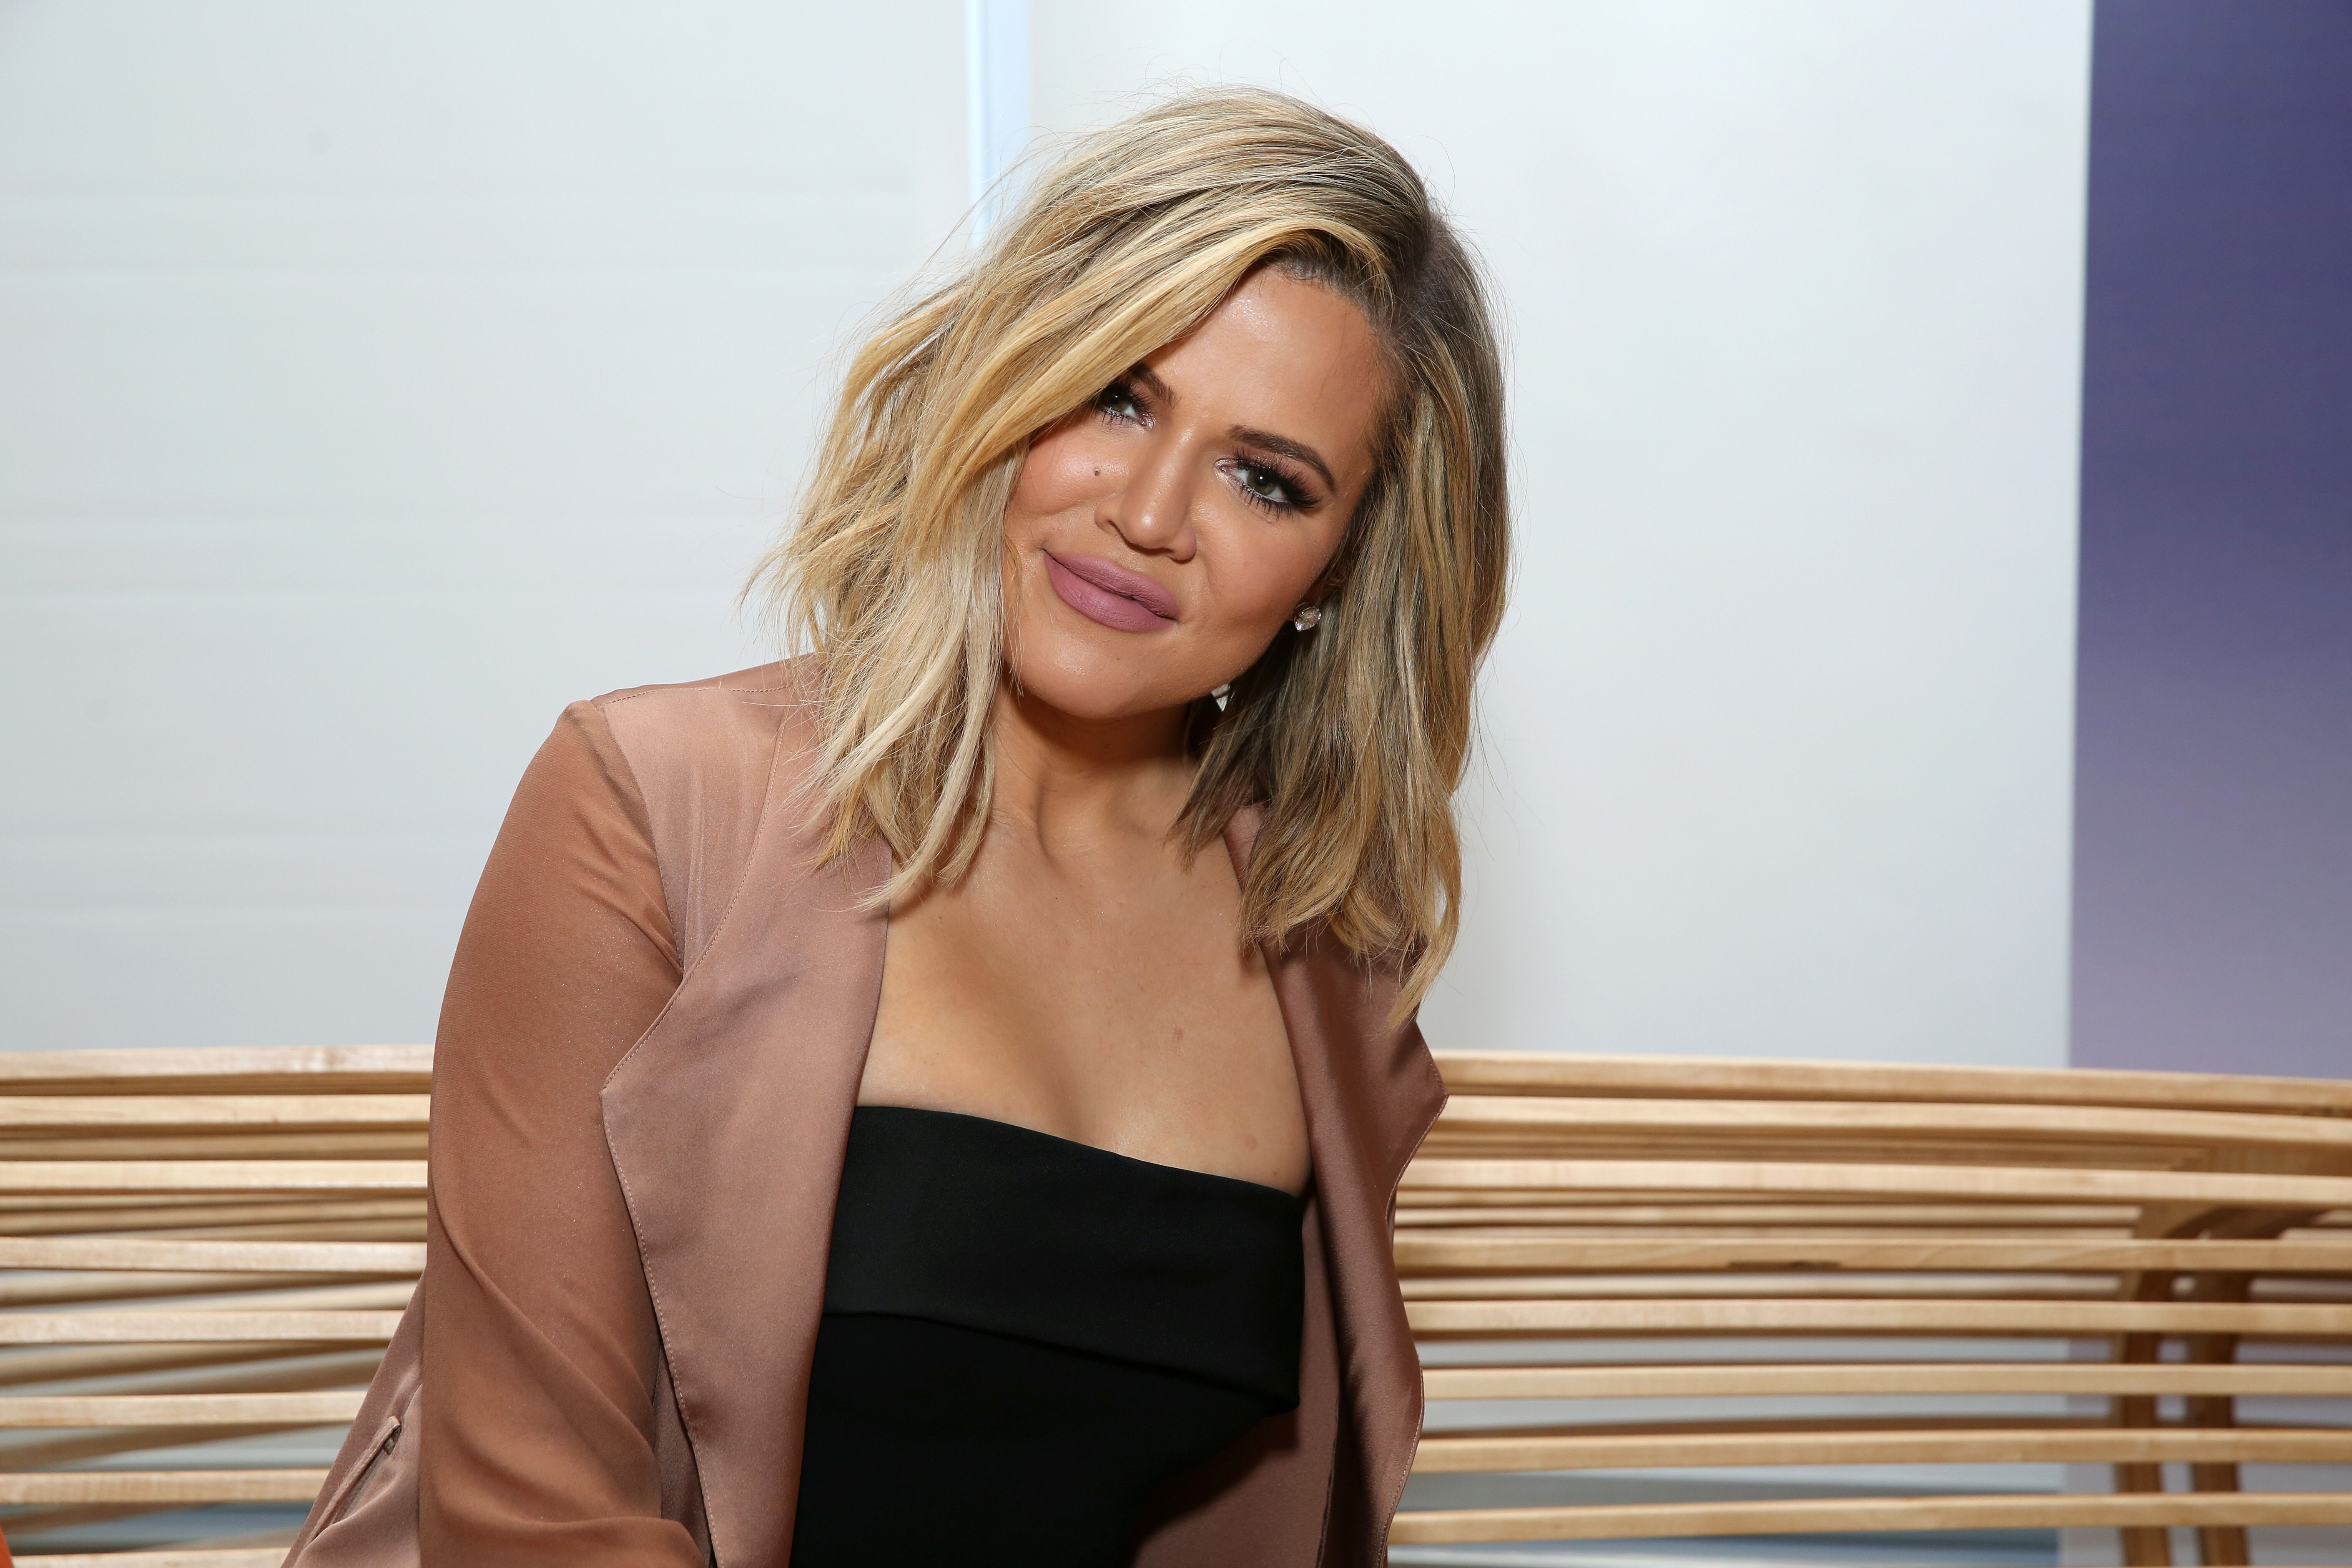 Khloe Kardashian smiling for the camera at one of her guest appearances | Source: Getty Images/GlobalImagesUkraine